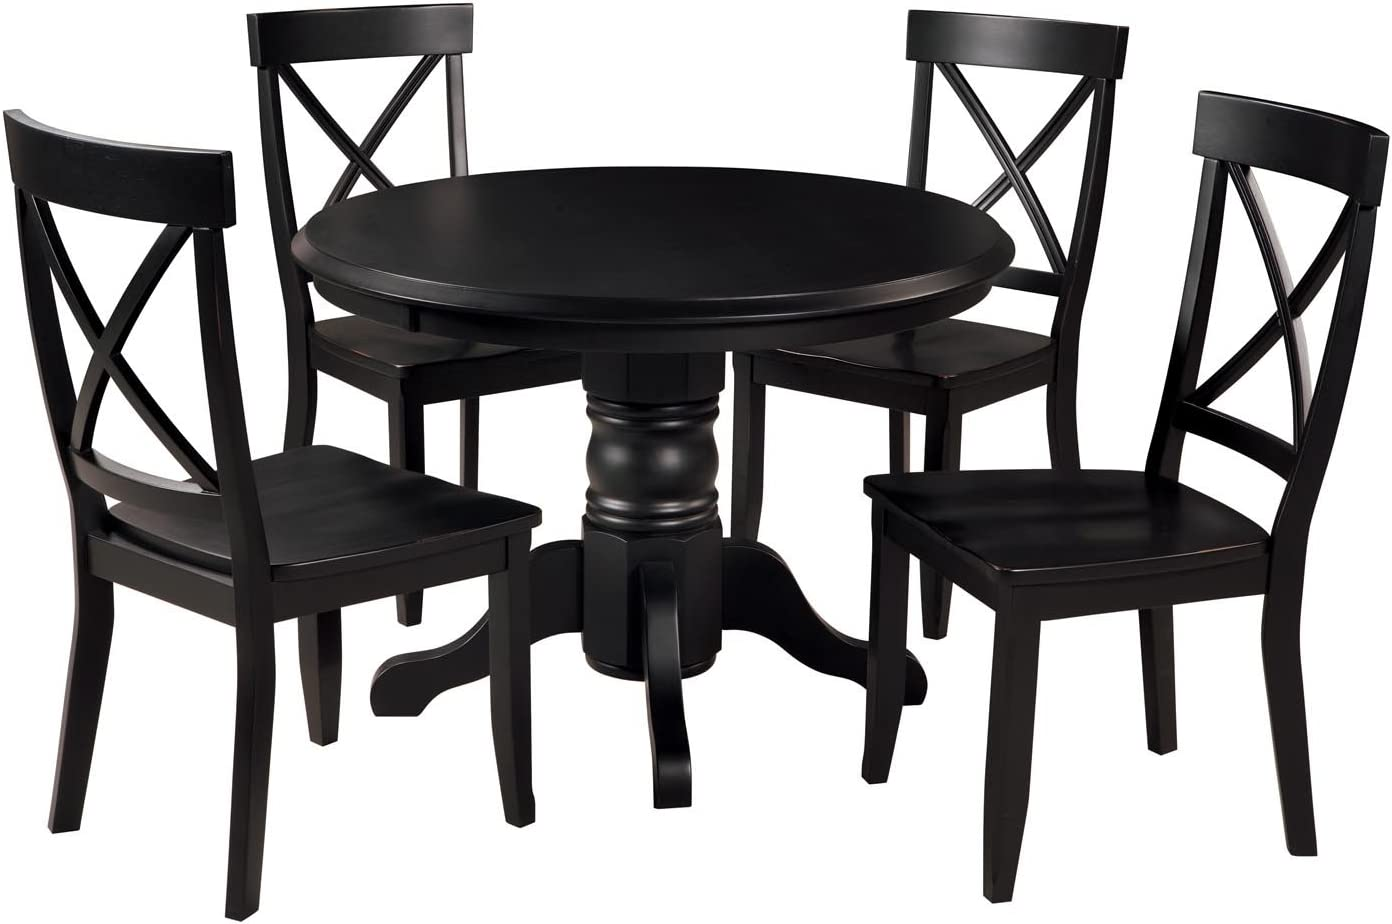 Classic Black 5 Piece 42 Round Dining Set by Home Styles